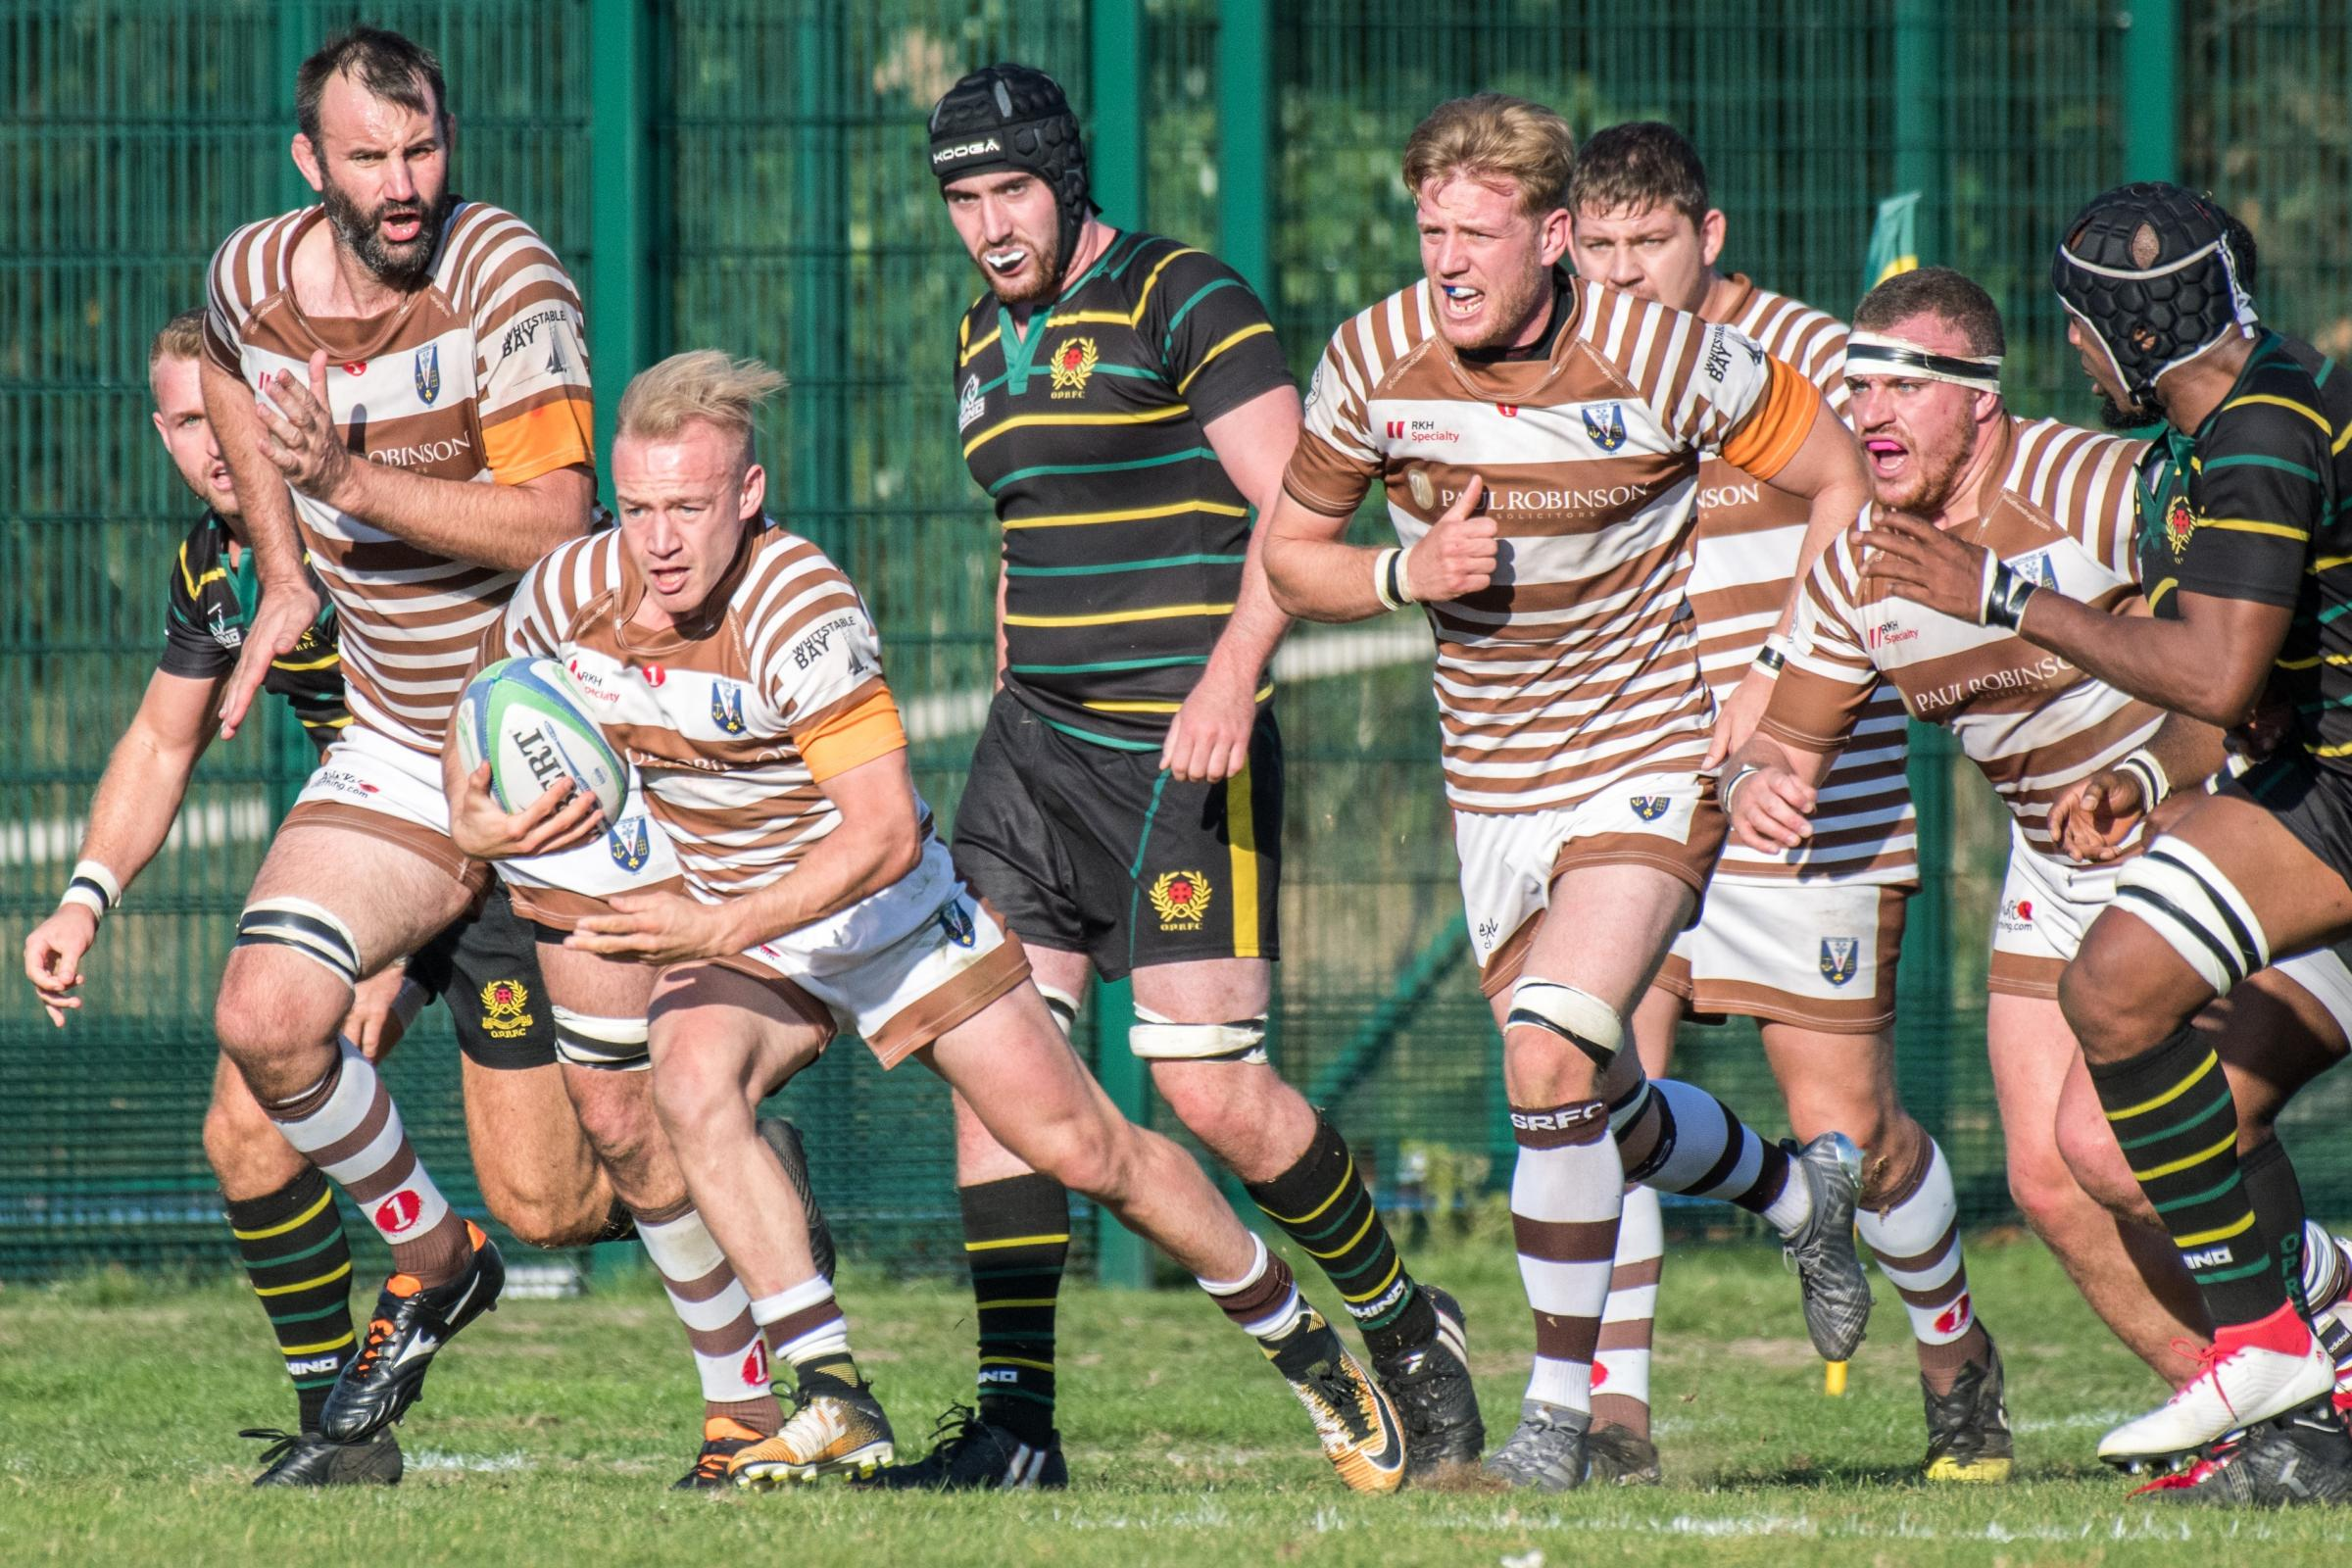 Wanting another win - Southend Saxons' Harry Branch